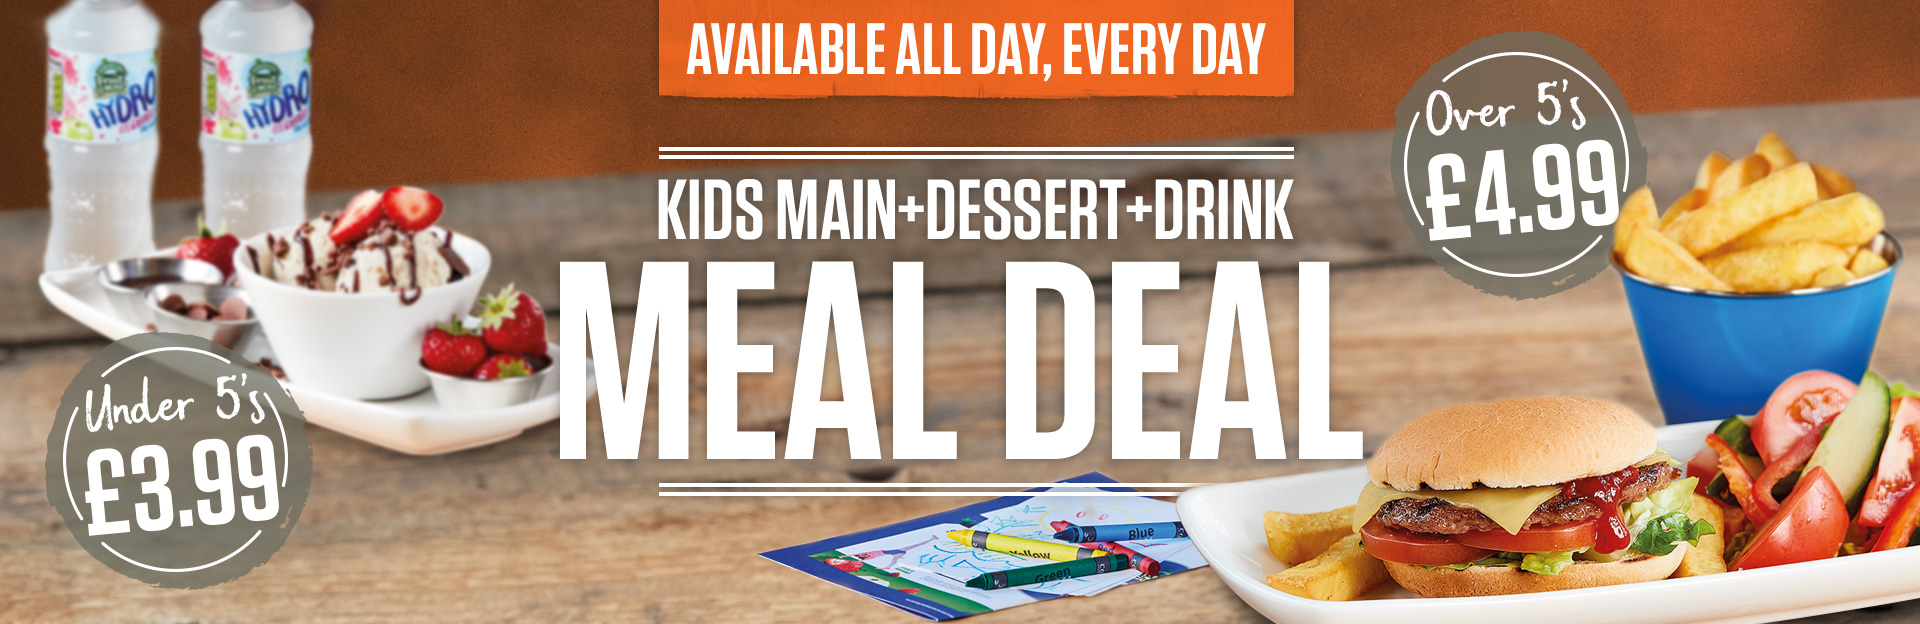 kids-meal-deal-banner.jpg